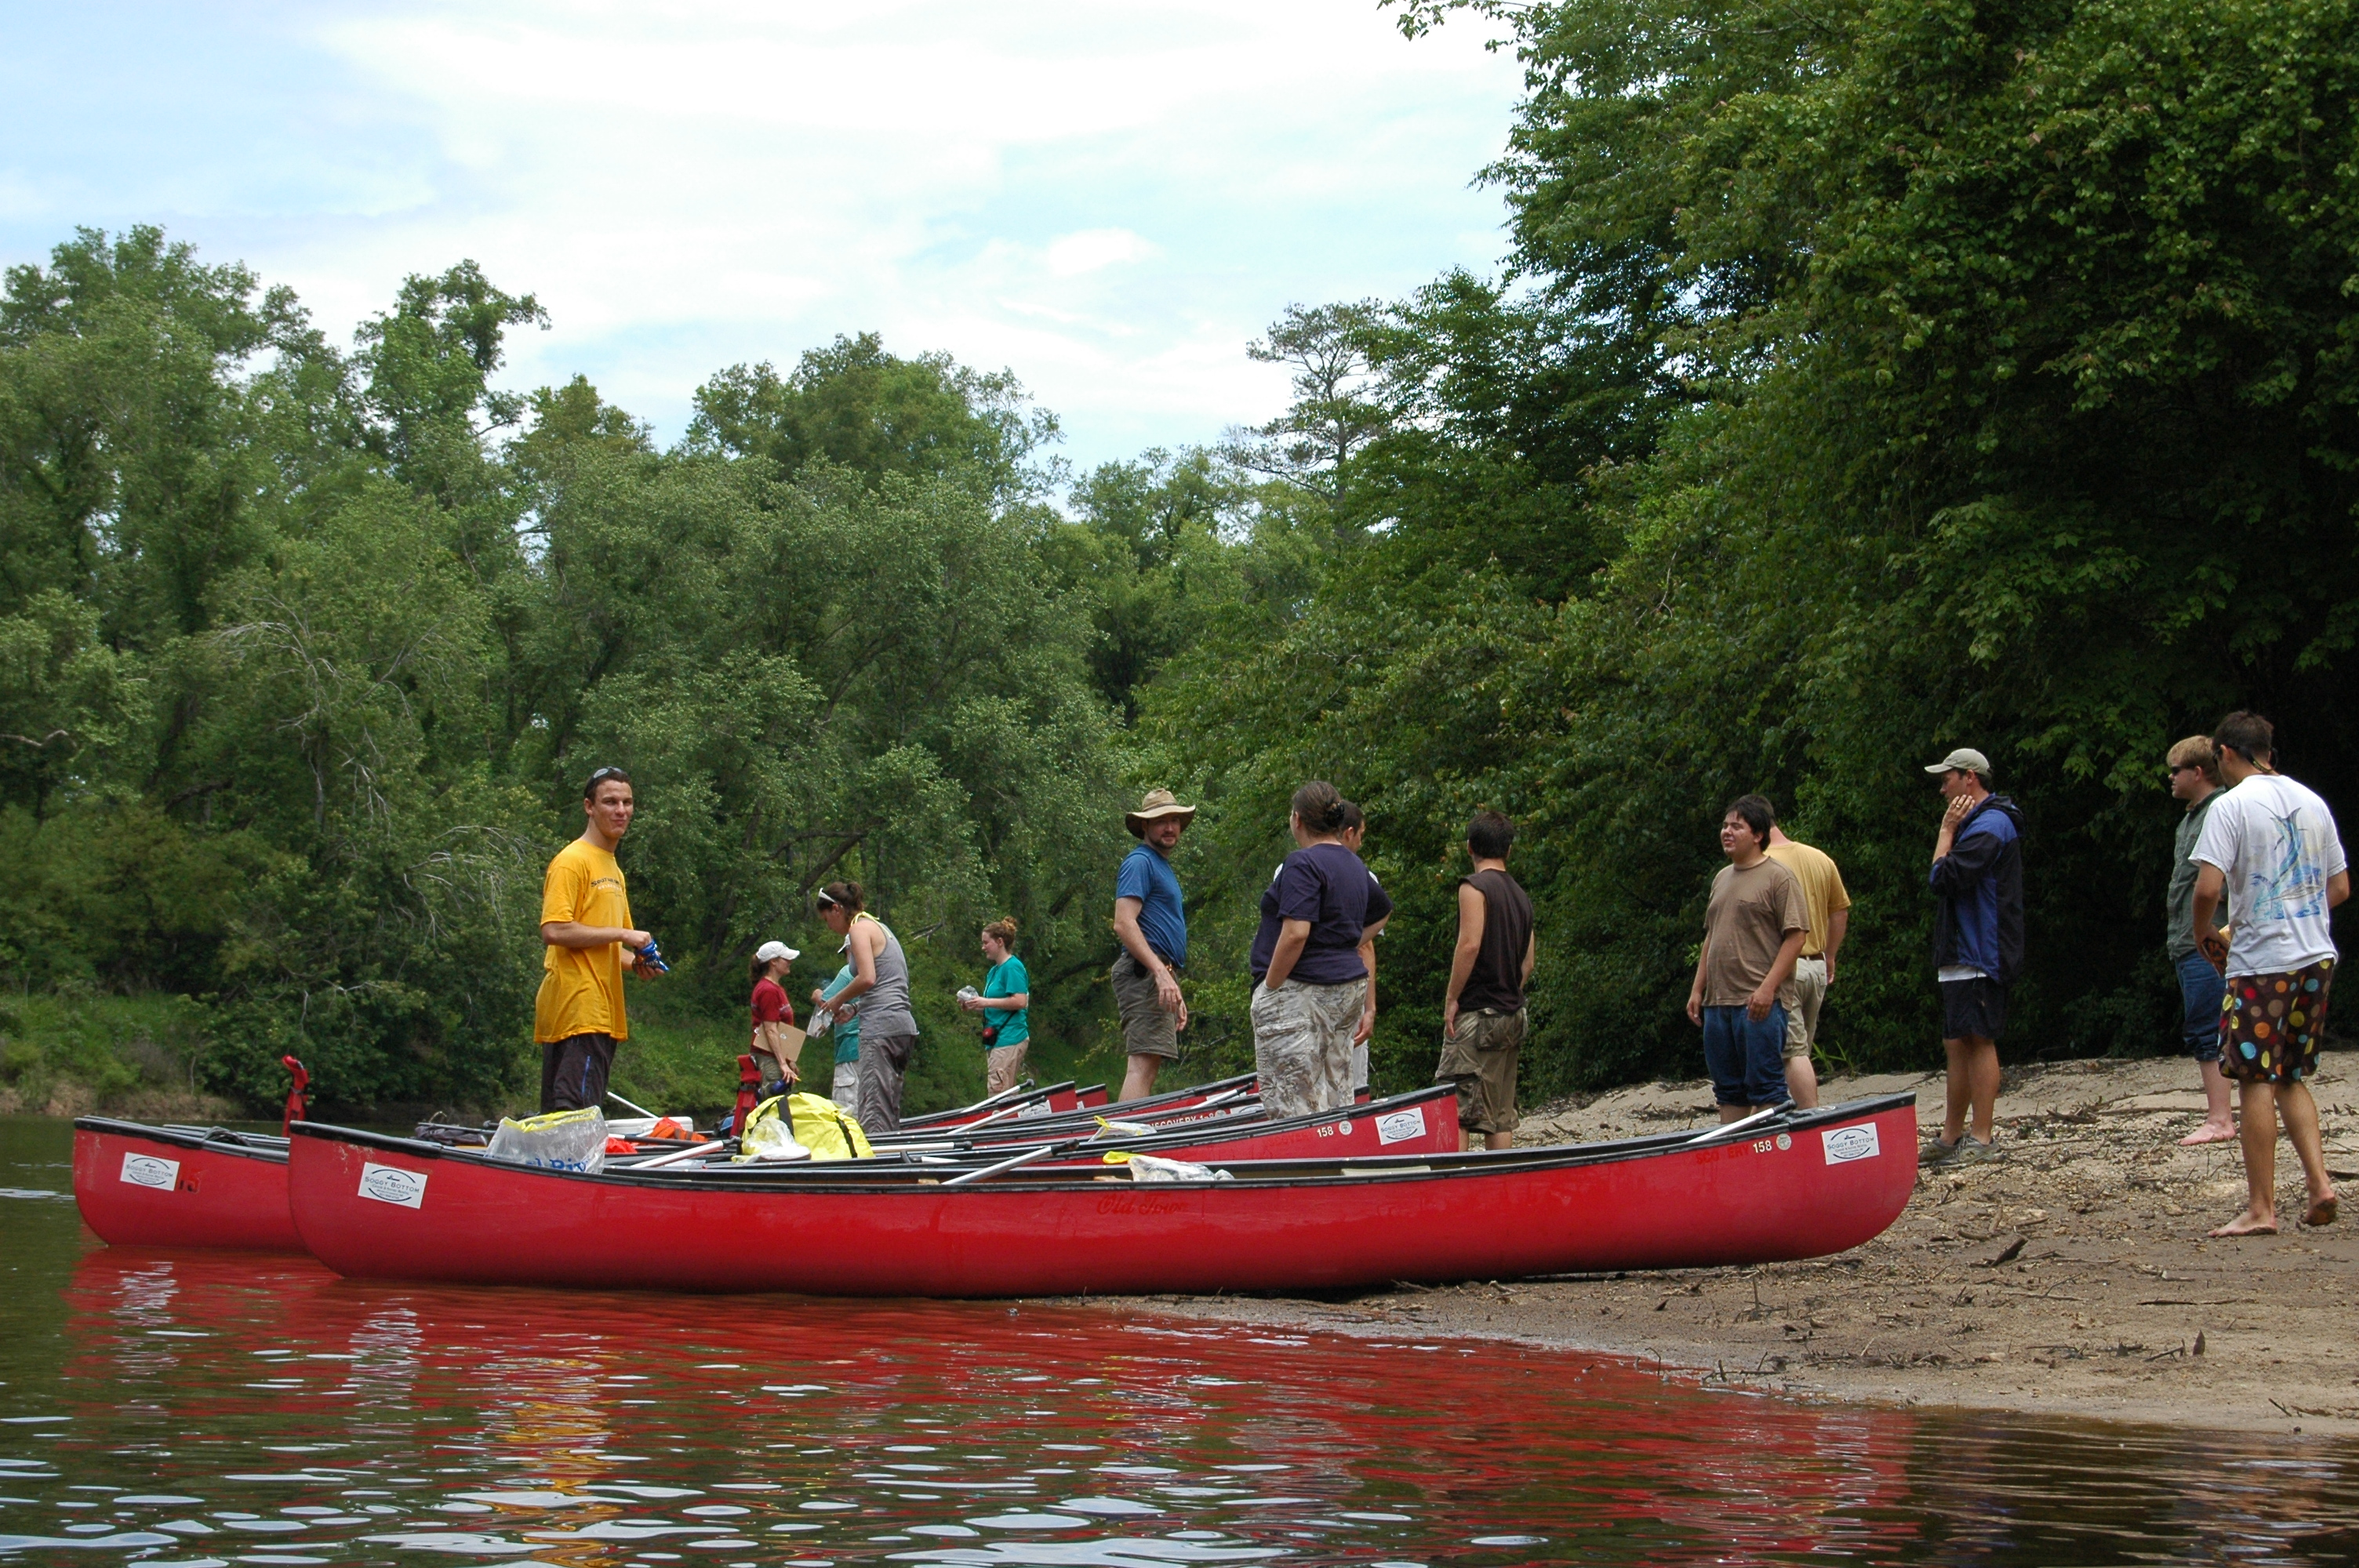 Photograph of volunteers cleaning up trash from river using canoes